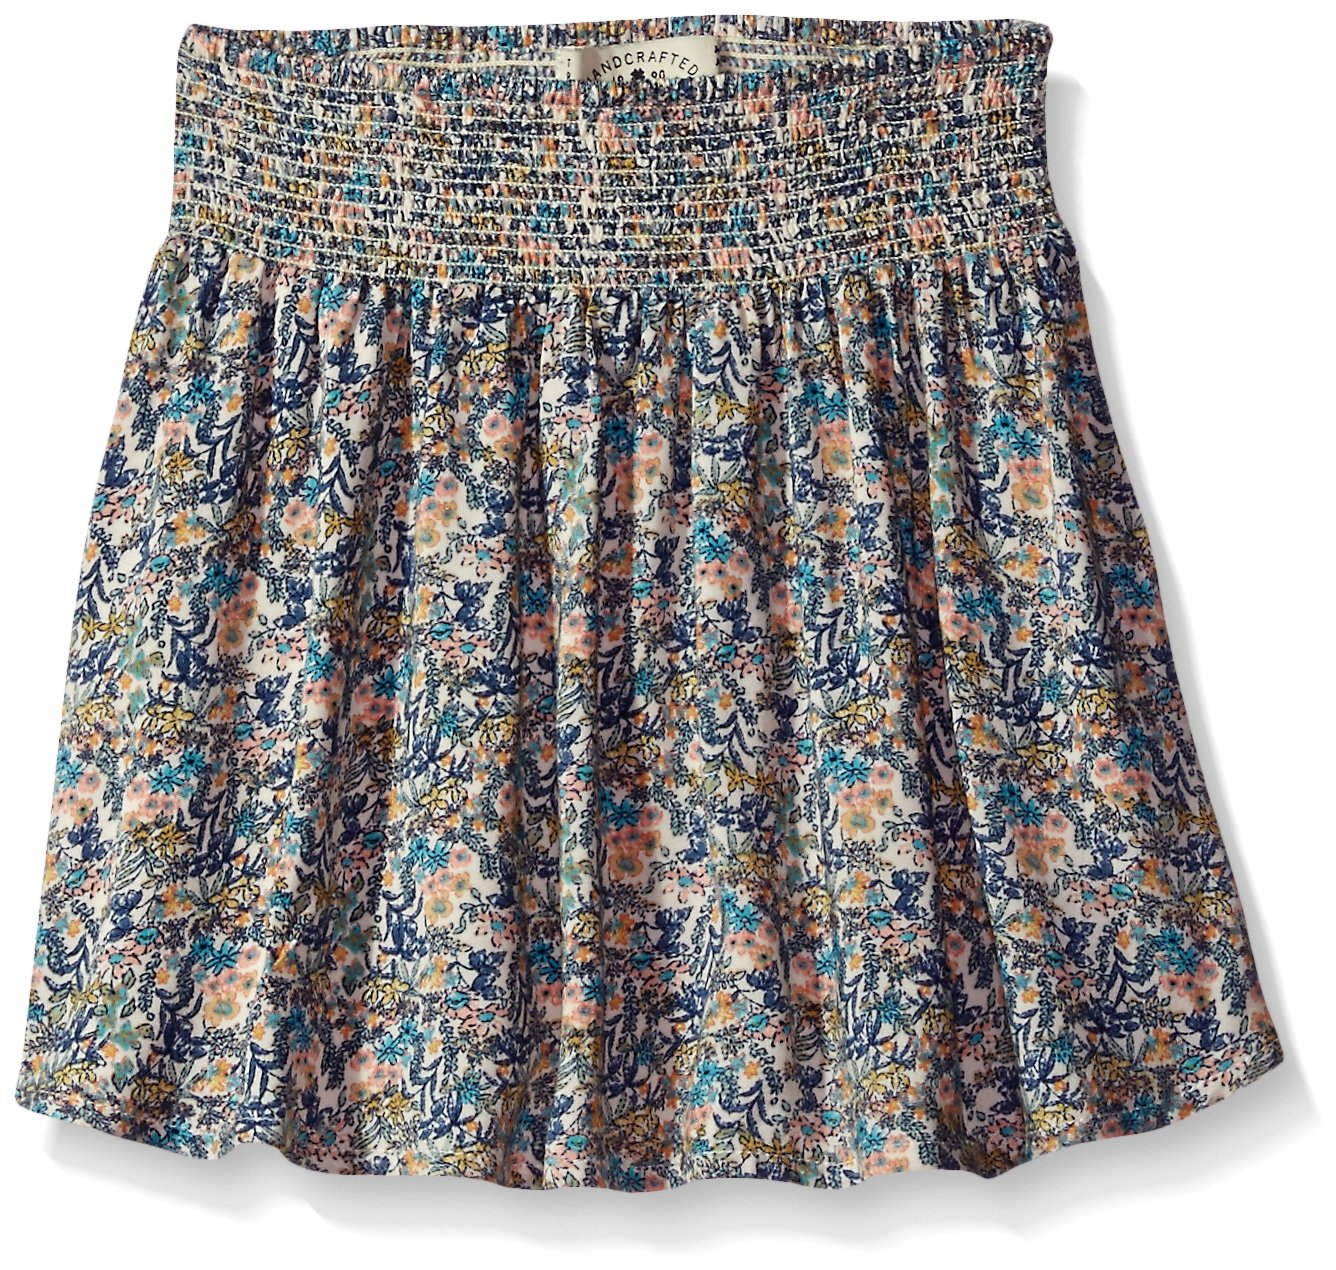 Lucky Brand Big Girls' Fashion Skirt, Katie Biscotti, Large (12/14)